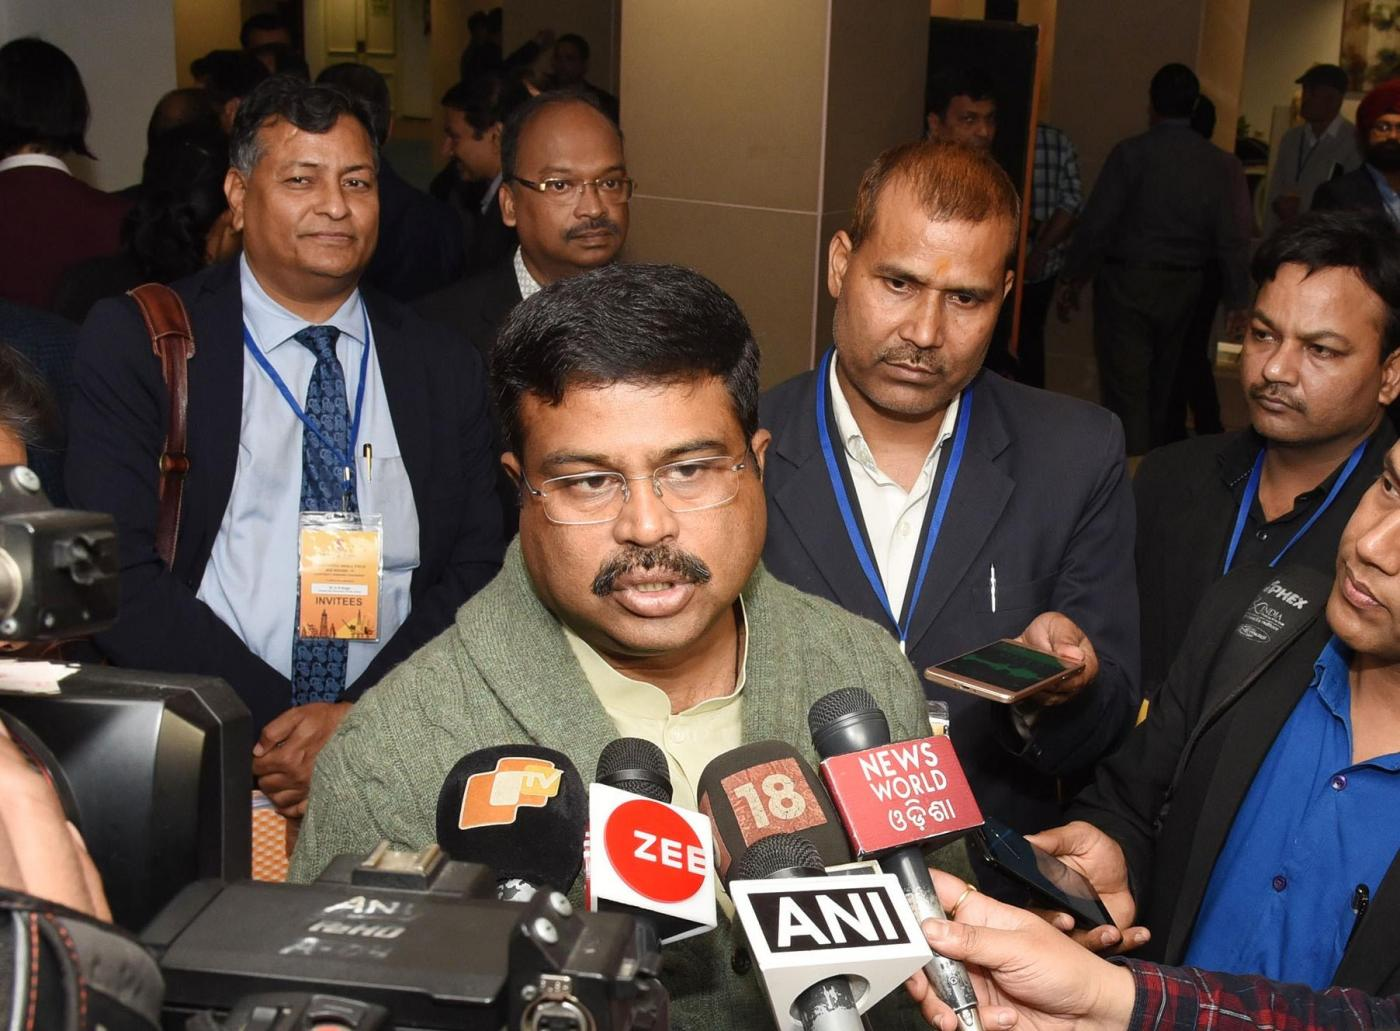 New Delhi: Union Petroleum and Natural Gas and Skill Development and Entrepreneurship Minister Dharmendra Pradhan talks to media person after the contract signing ceremony of Discovered Small Field (DSF) Bid Round-II, in New Delhi, on March 7, 2019. (Photo: IANS/PIB) by .